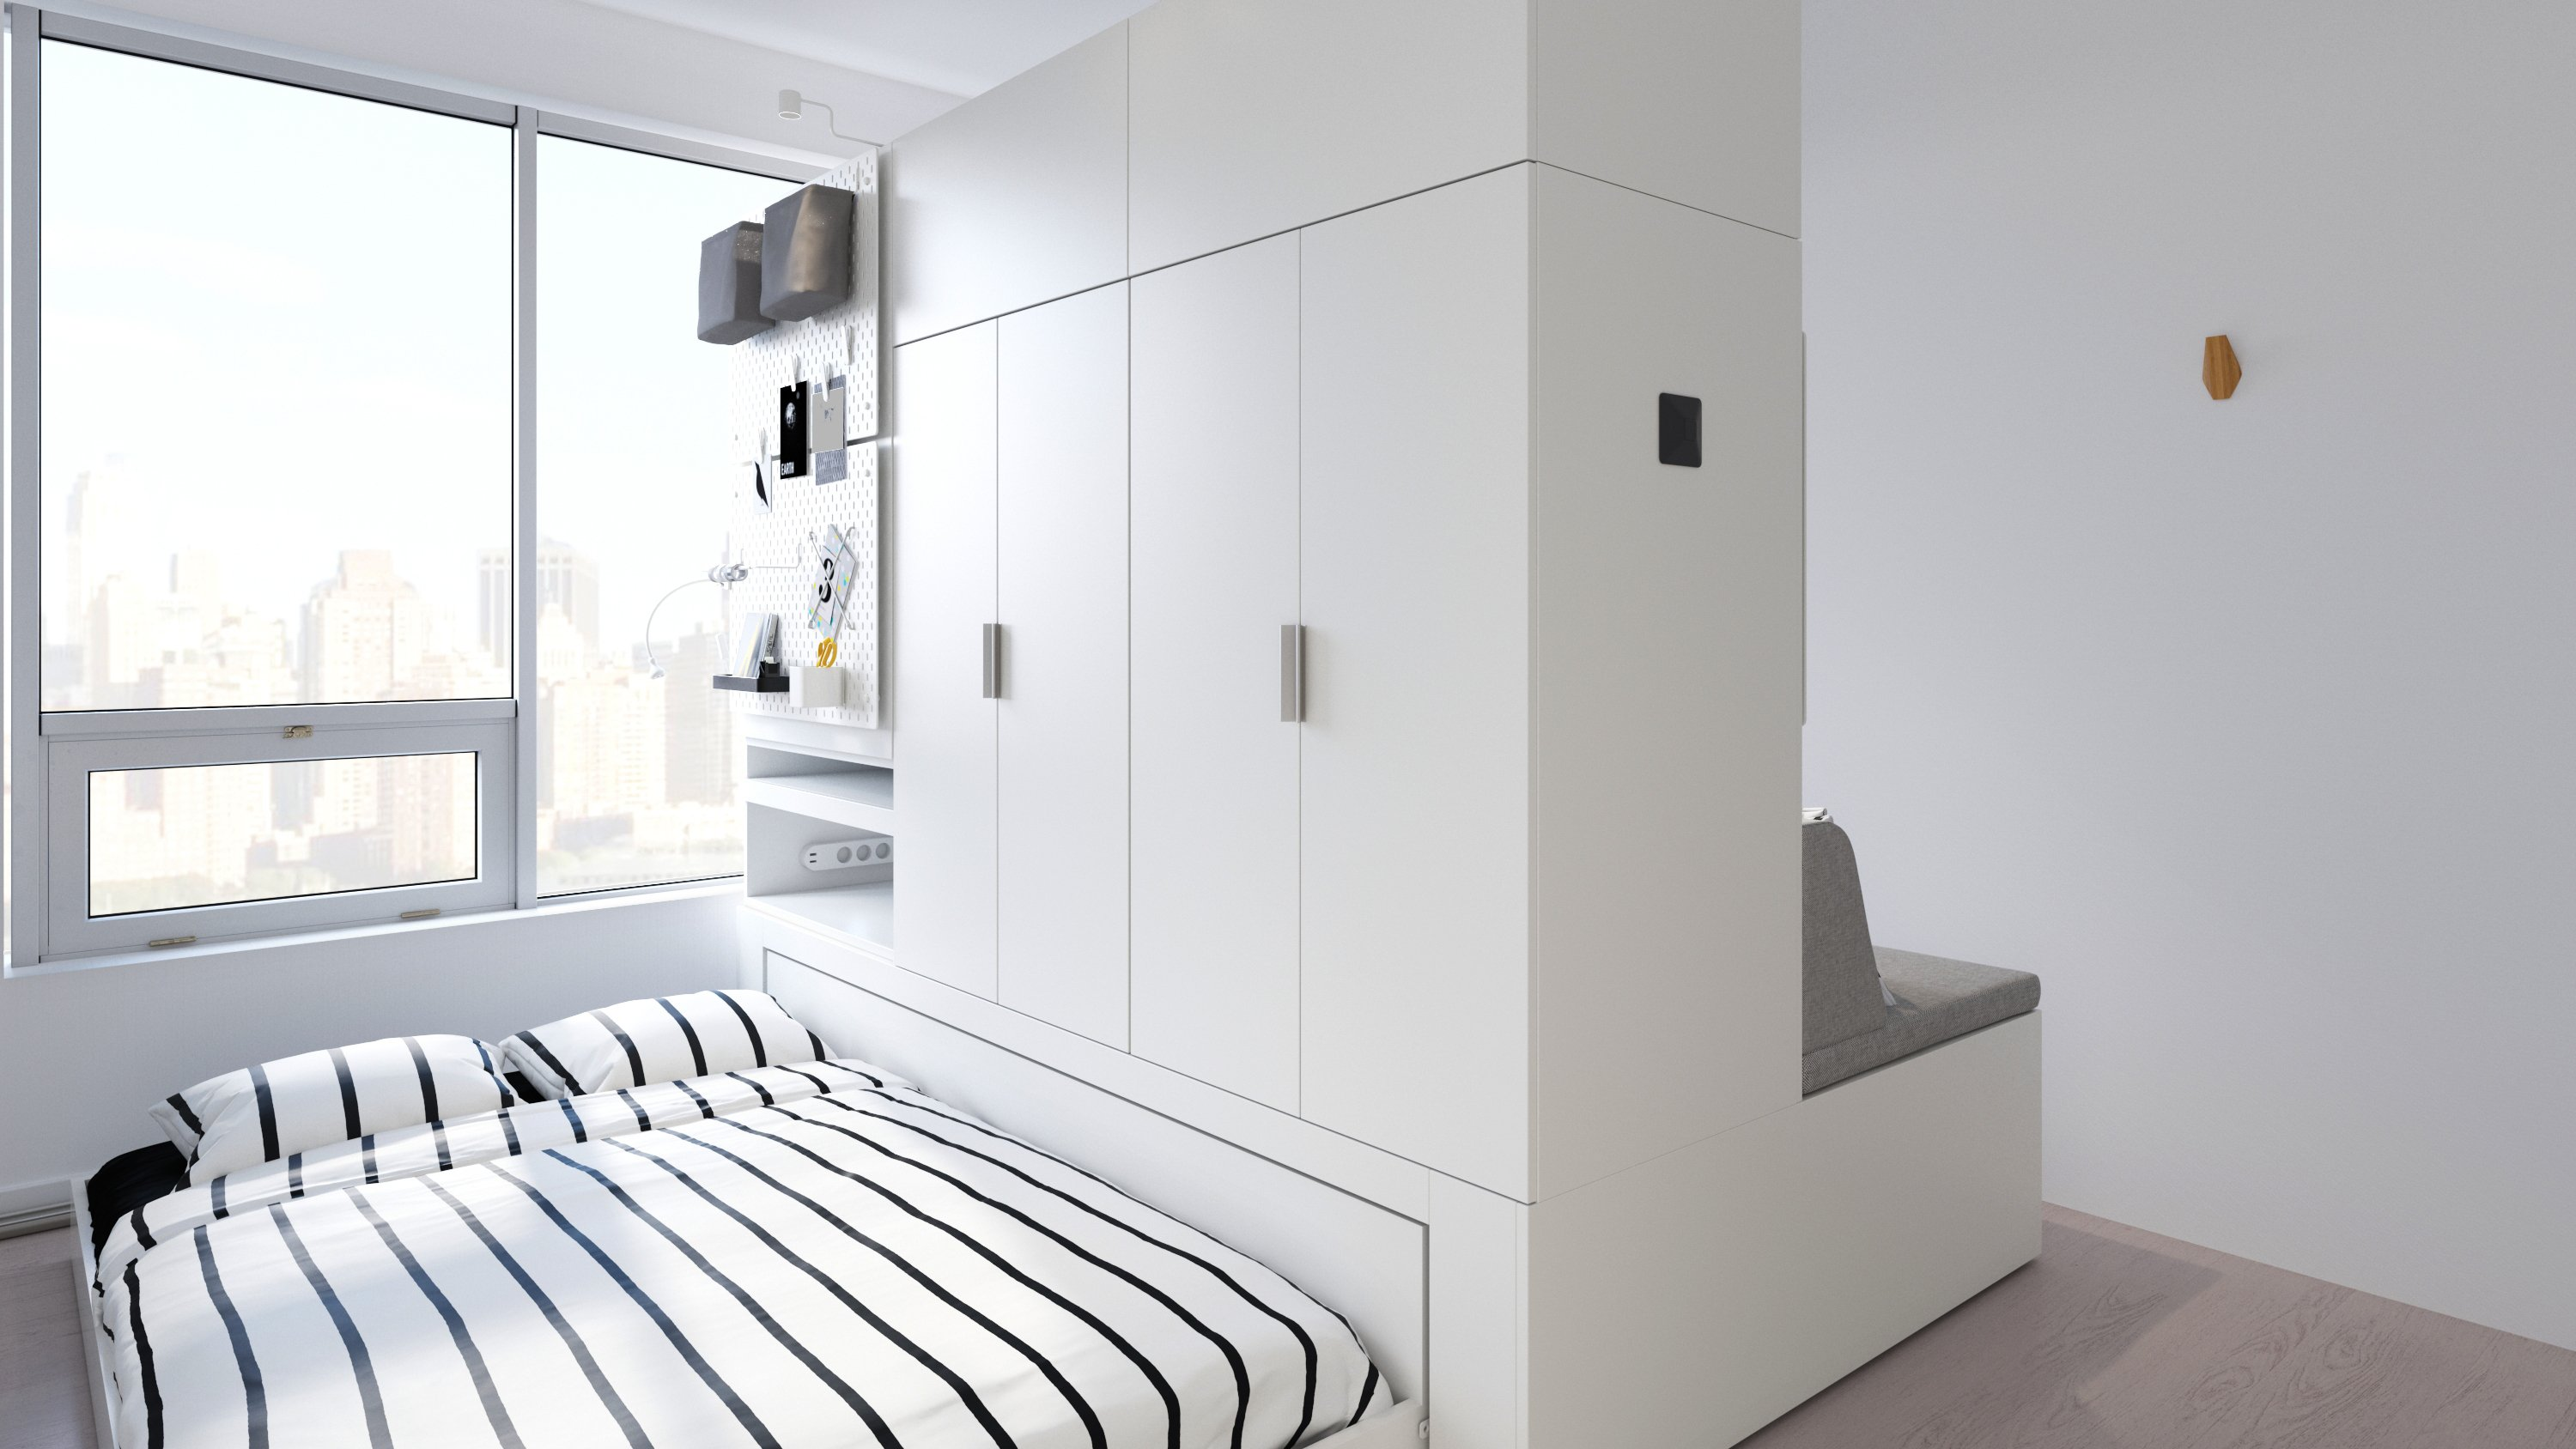 Ikea Rognan robotic furniture highlighting the bed and closet space